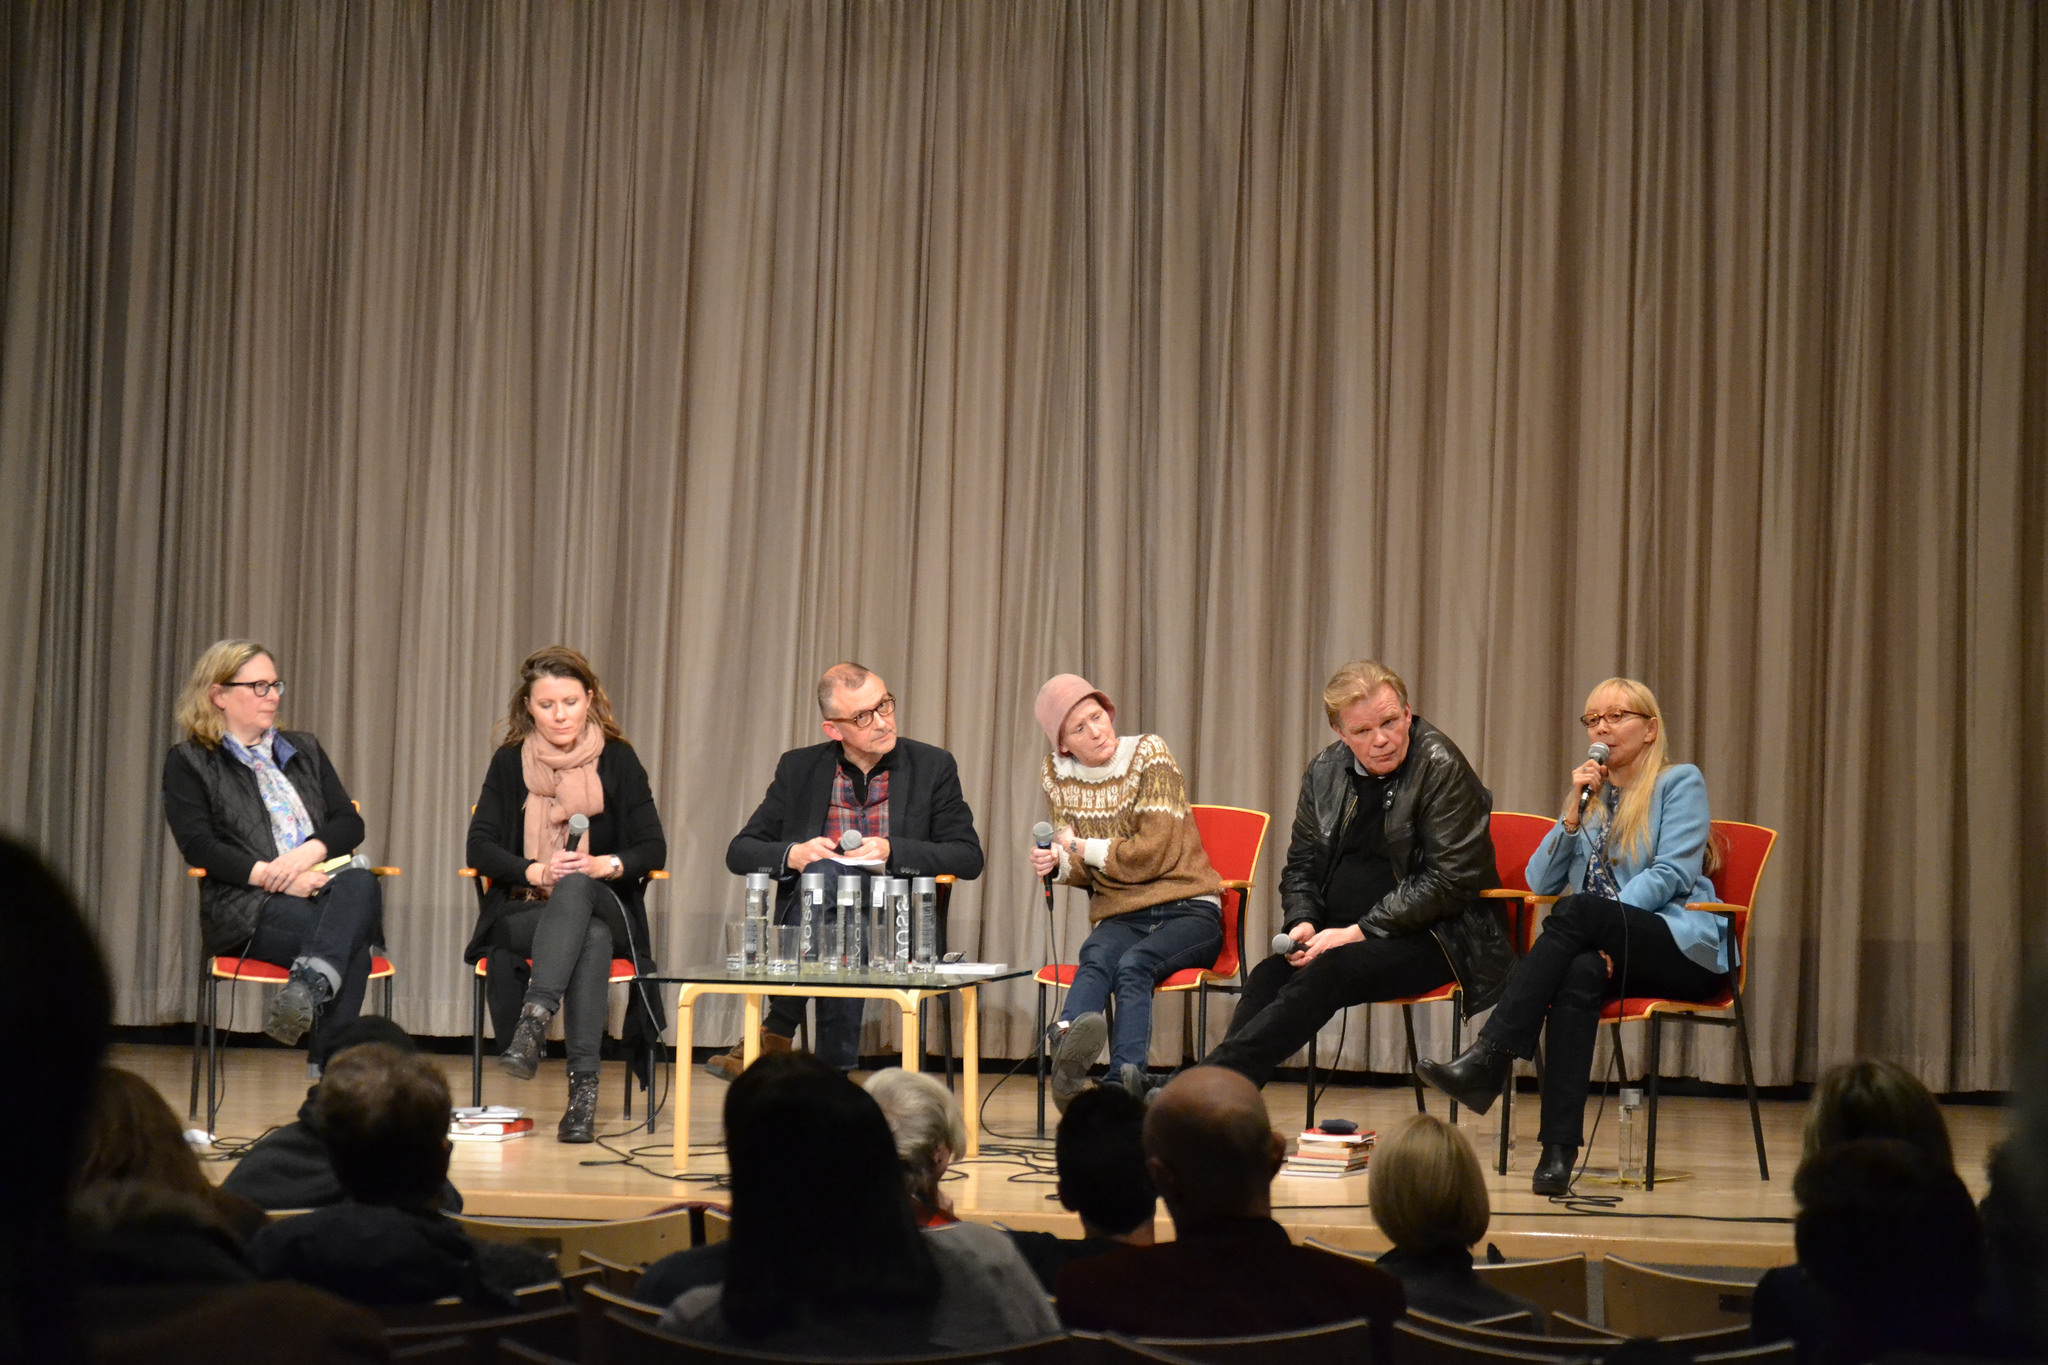 Helen Mitsios, far right, at the Scandinavia House poetry reading, with four of the seventeen poets featured in Beneath the Ice: An Anthology of Contemporary Icelandic Poetry (Talisman House Publishers).